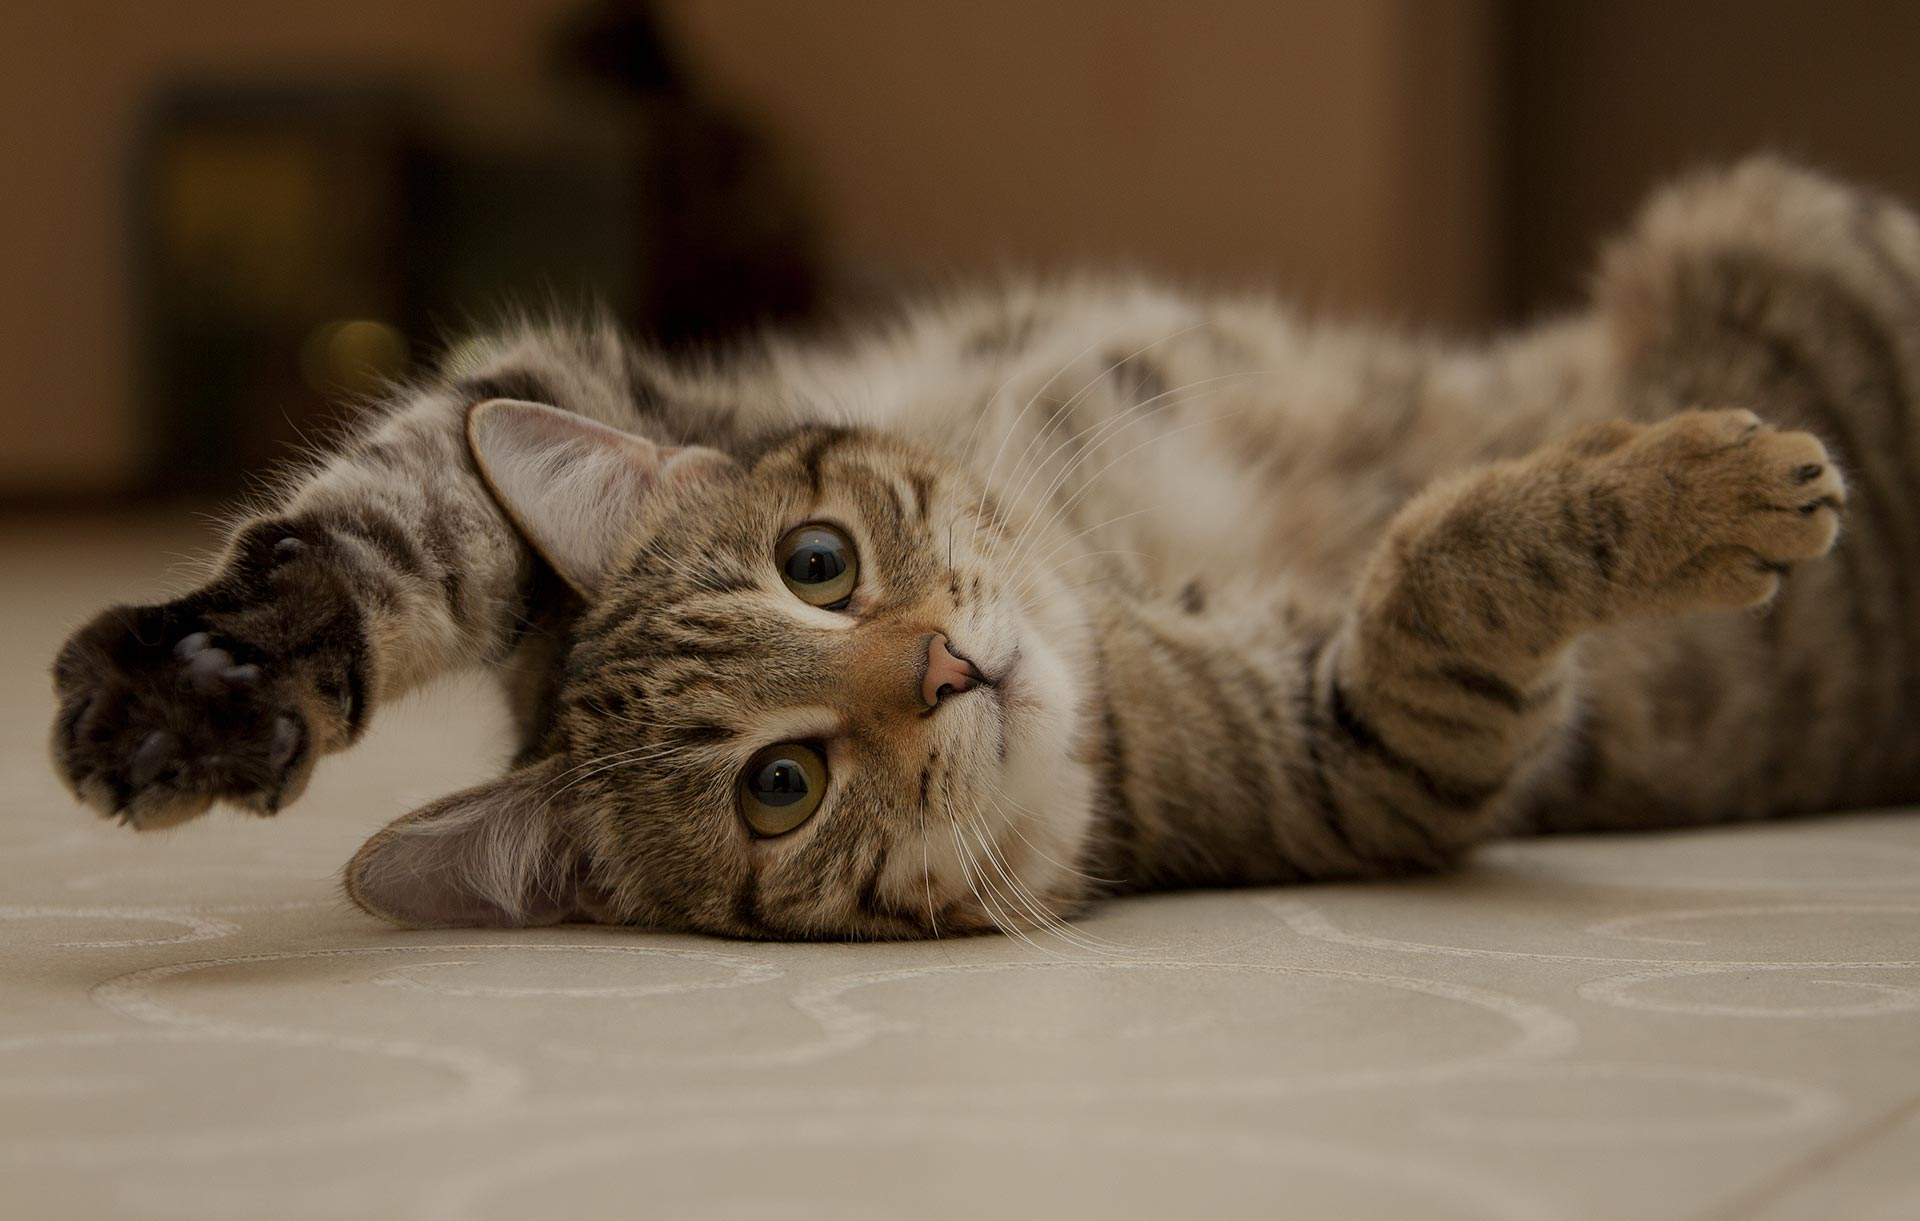 Cat playing on floor